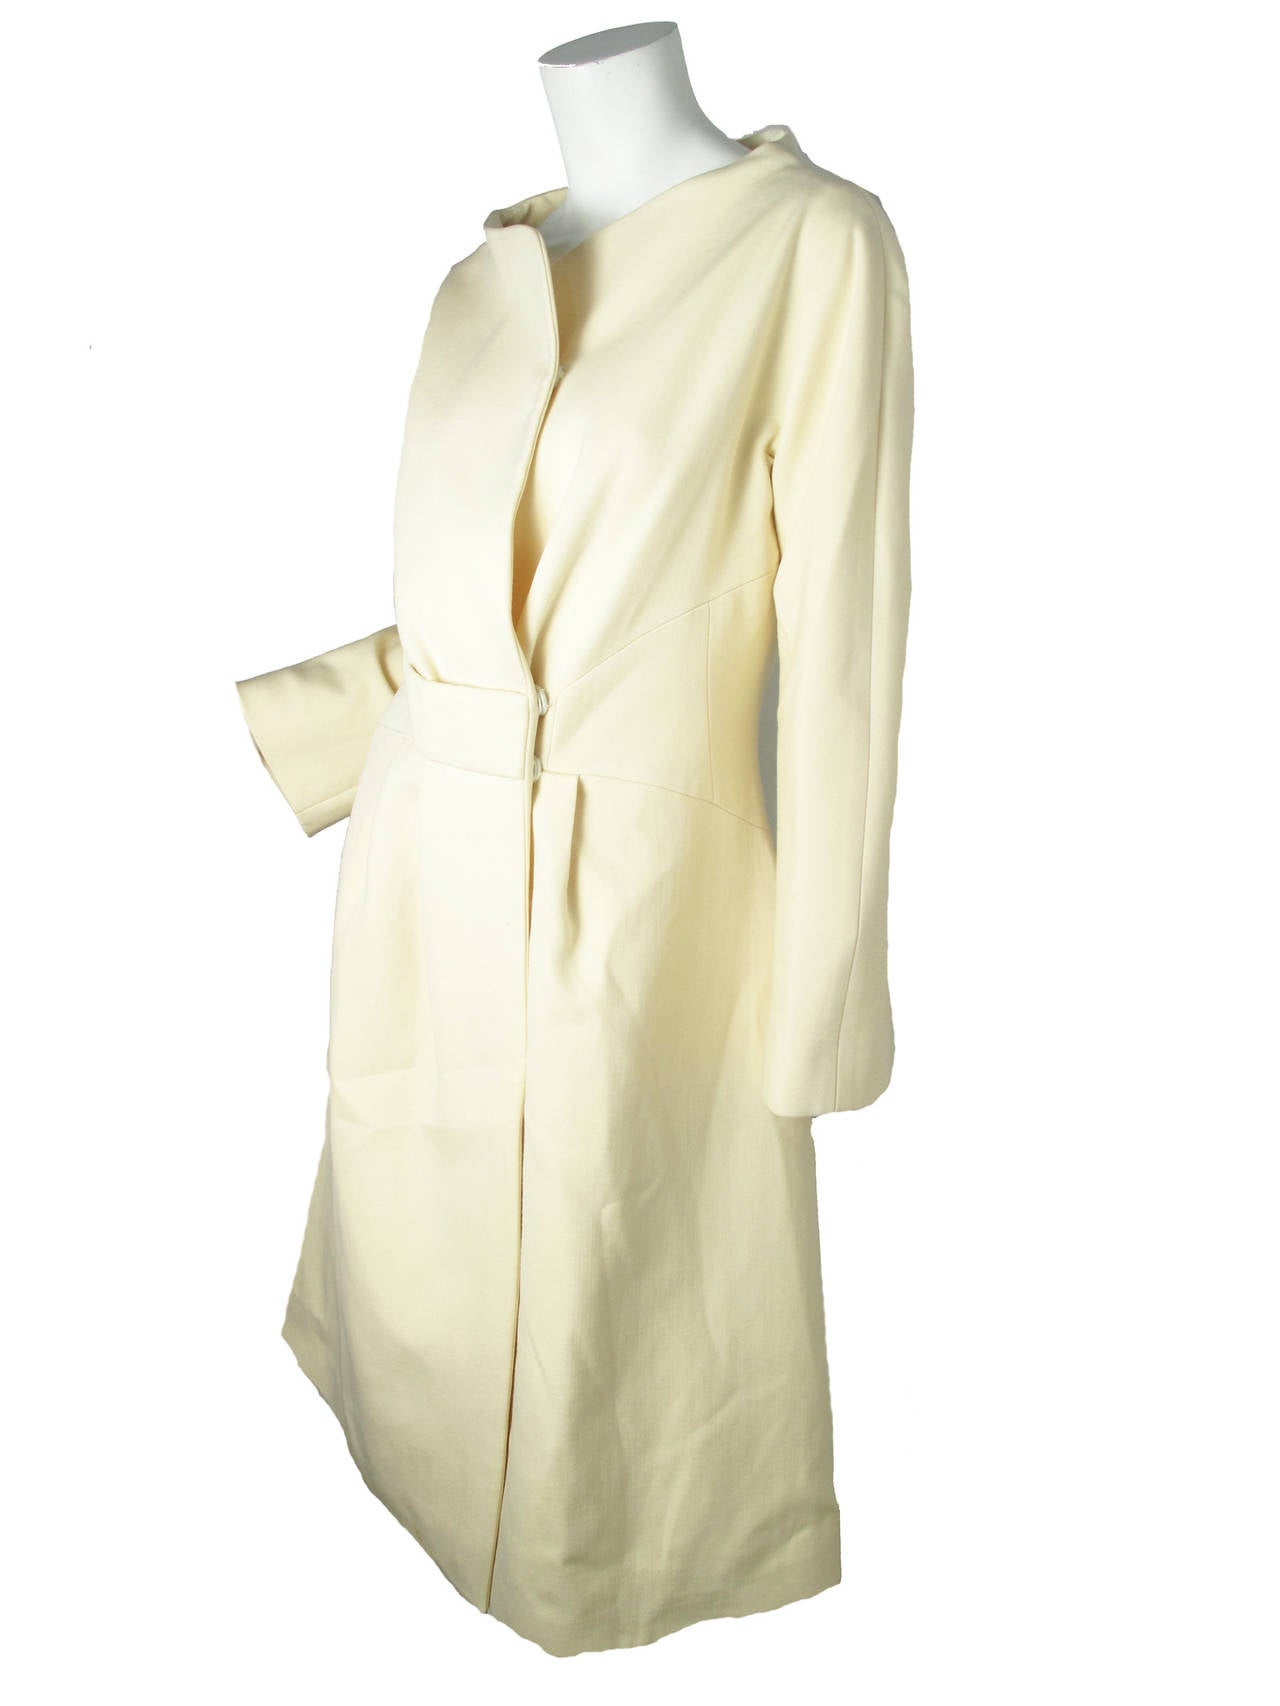 Ungaro Wool Coat Bright Yellow Silk Lining 3